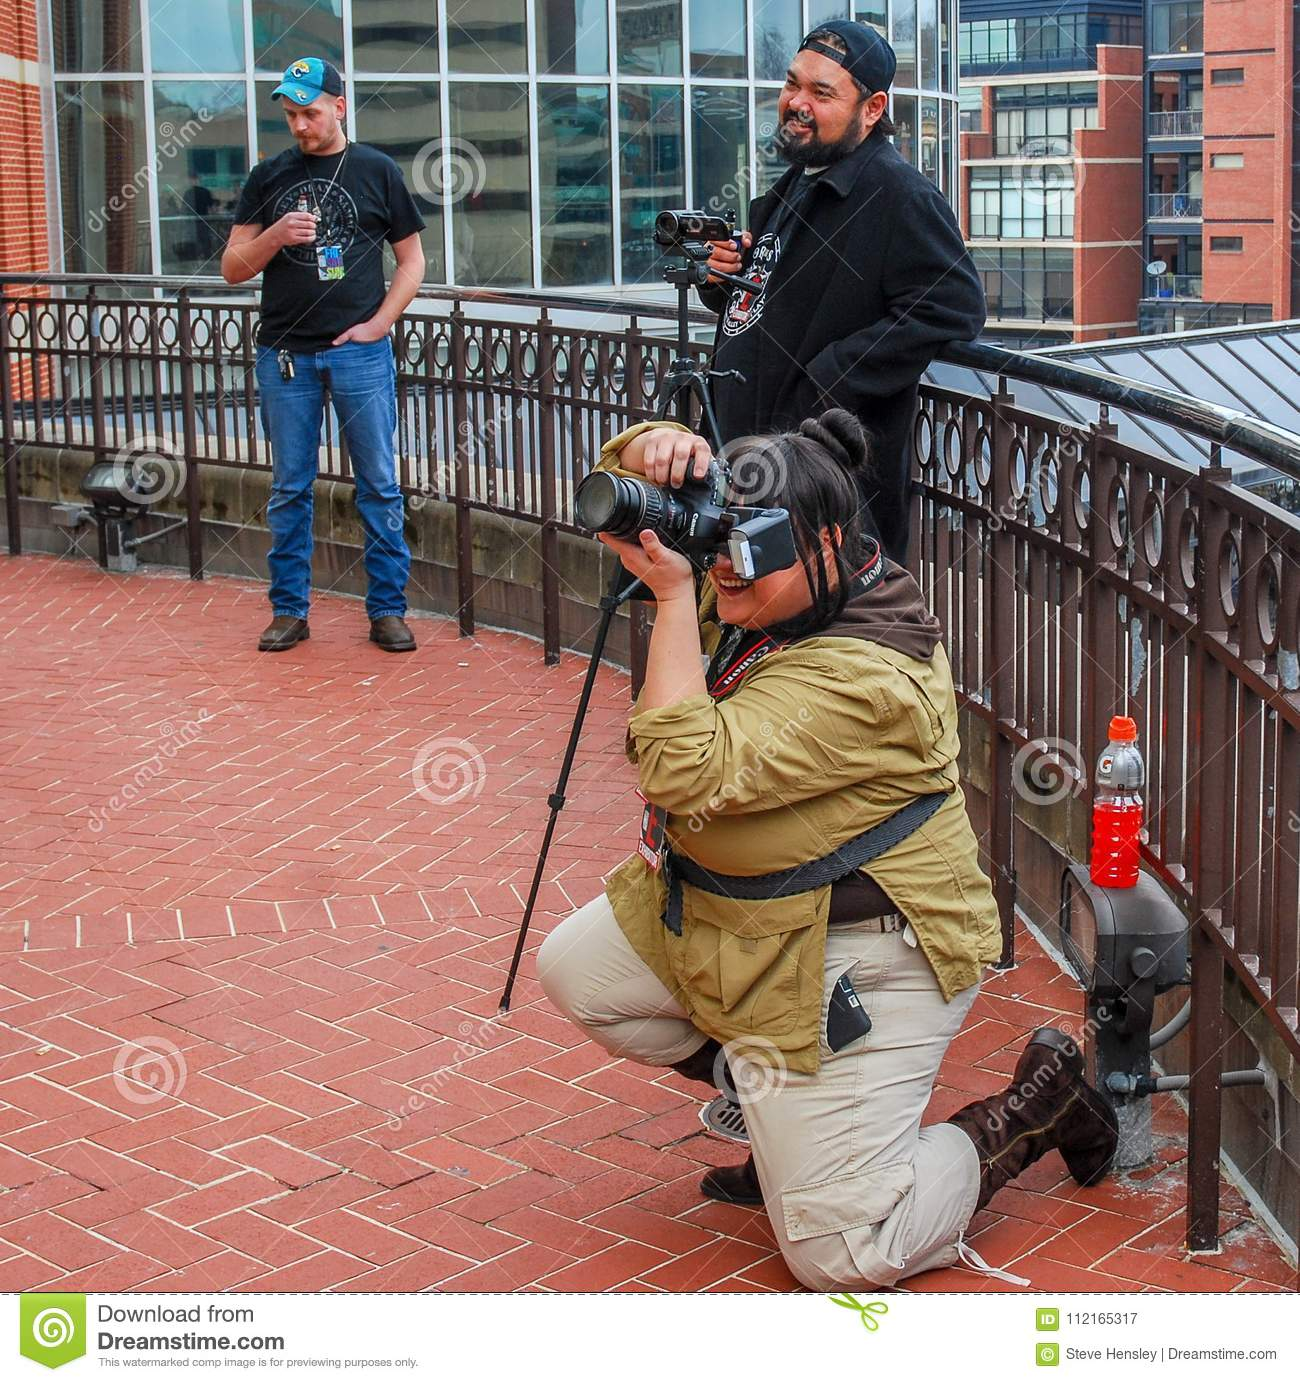 Lexington, Ky US - March 11, 2018 - Lexington Comic & Toy Con Photographers snap pictures of cosplayers as they pose